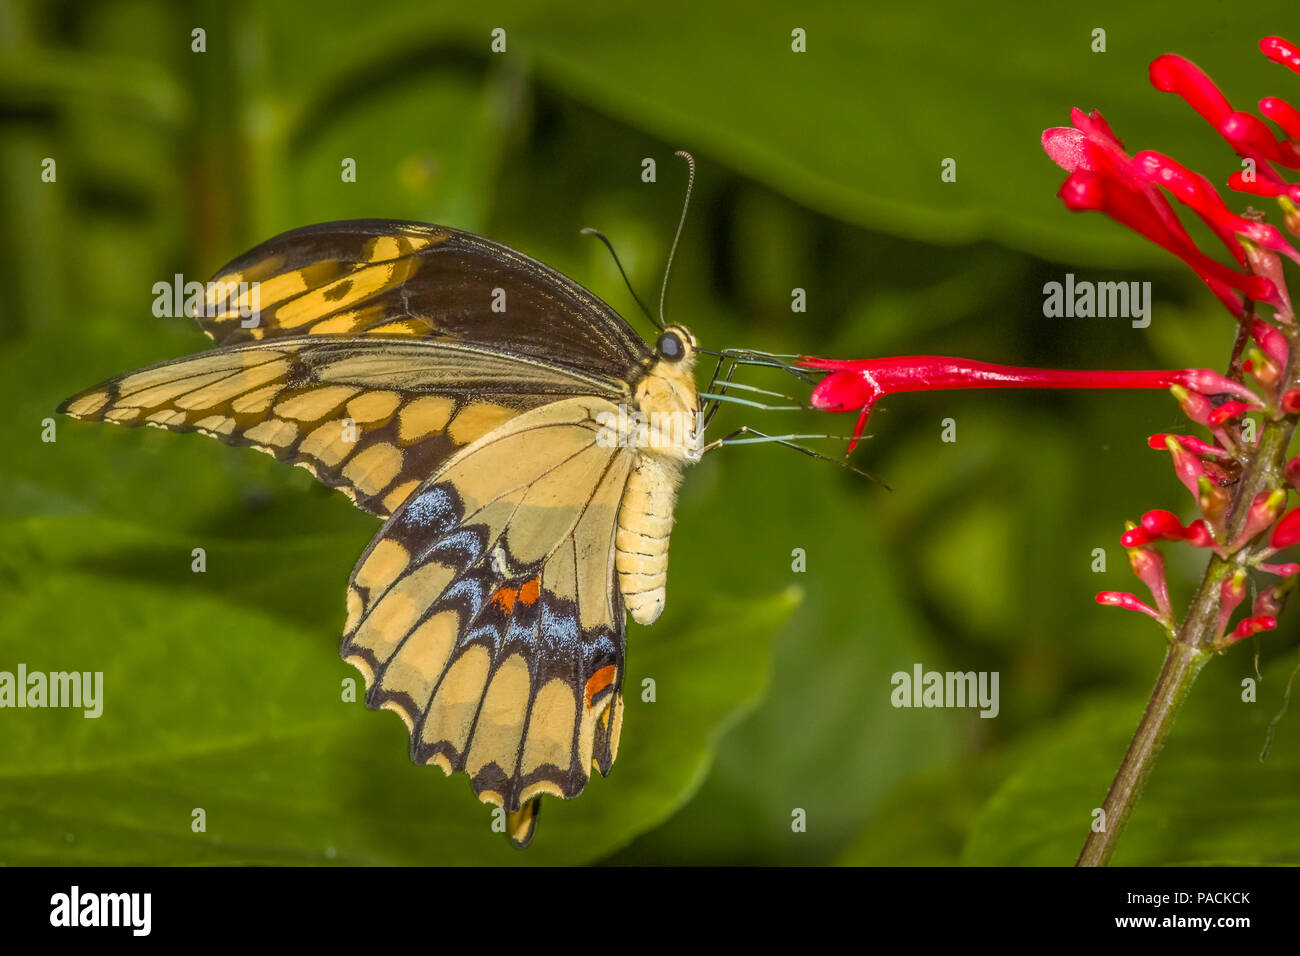 Closeup of Giant Swallowtai ( Papilio crespbontes ) butterfly on red flower - Stock Image